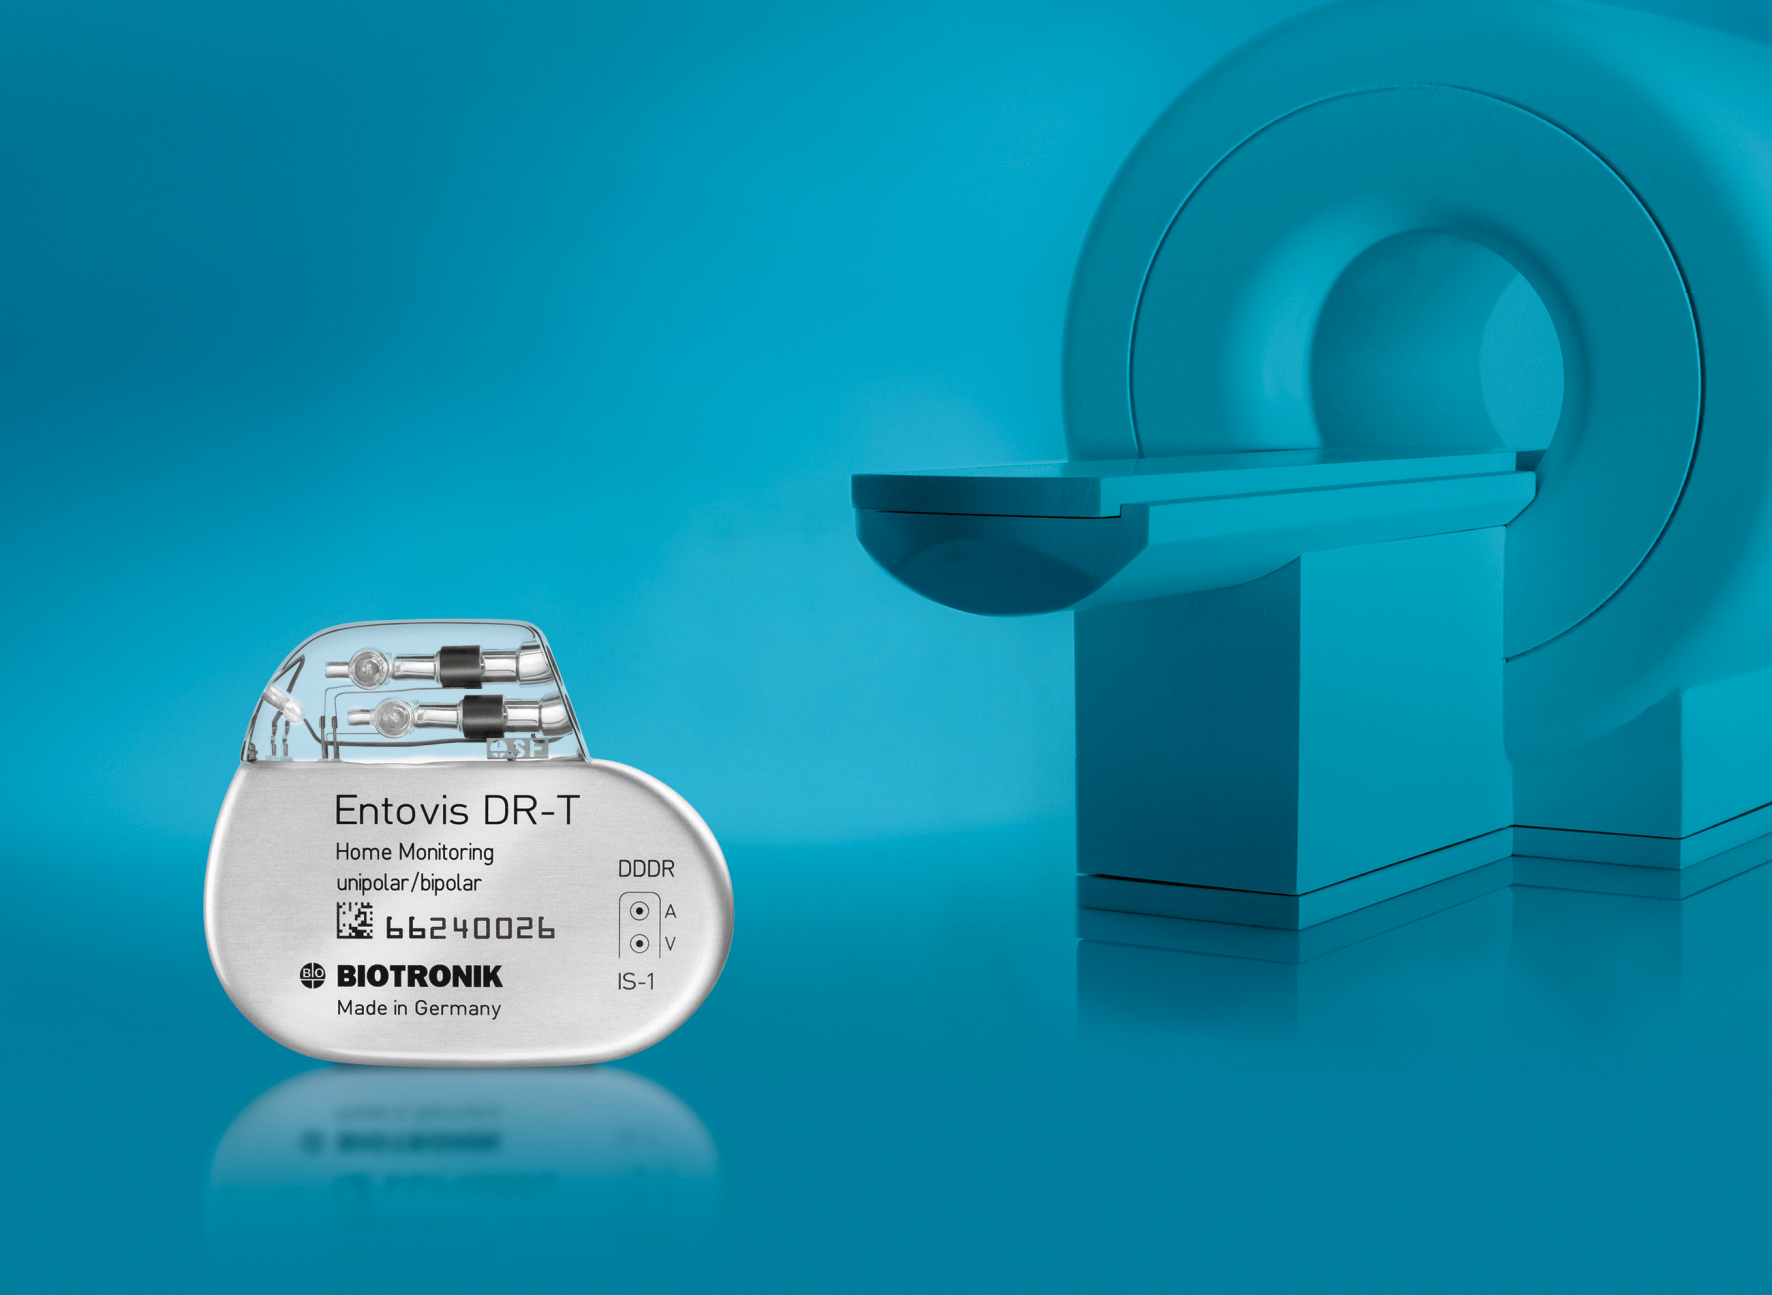 BIOTRONIK Entovis Dual-Chamber Pacemaker with ProMRI Technology (Photo: Business Wire)